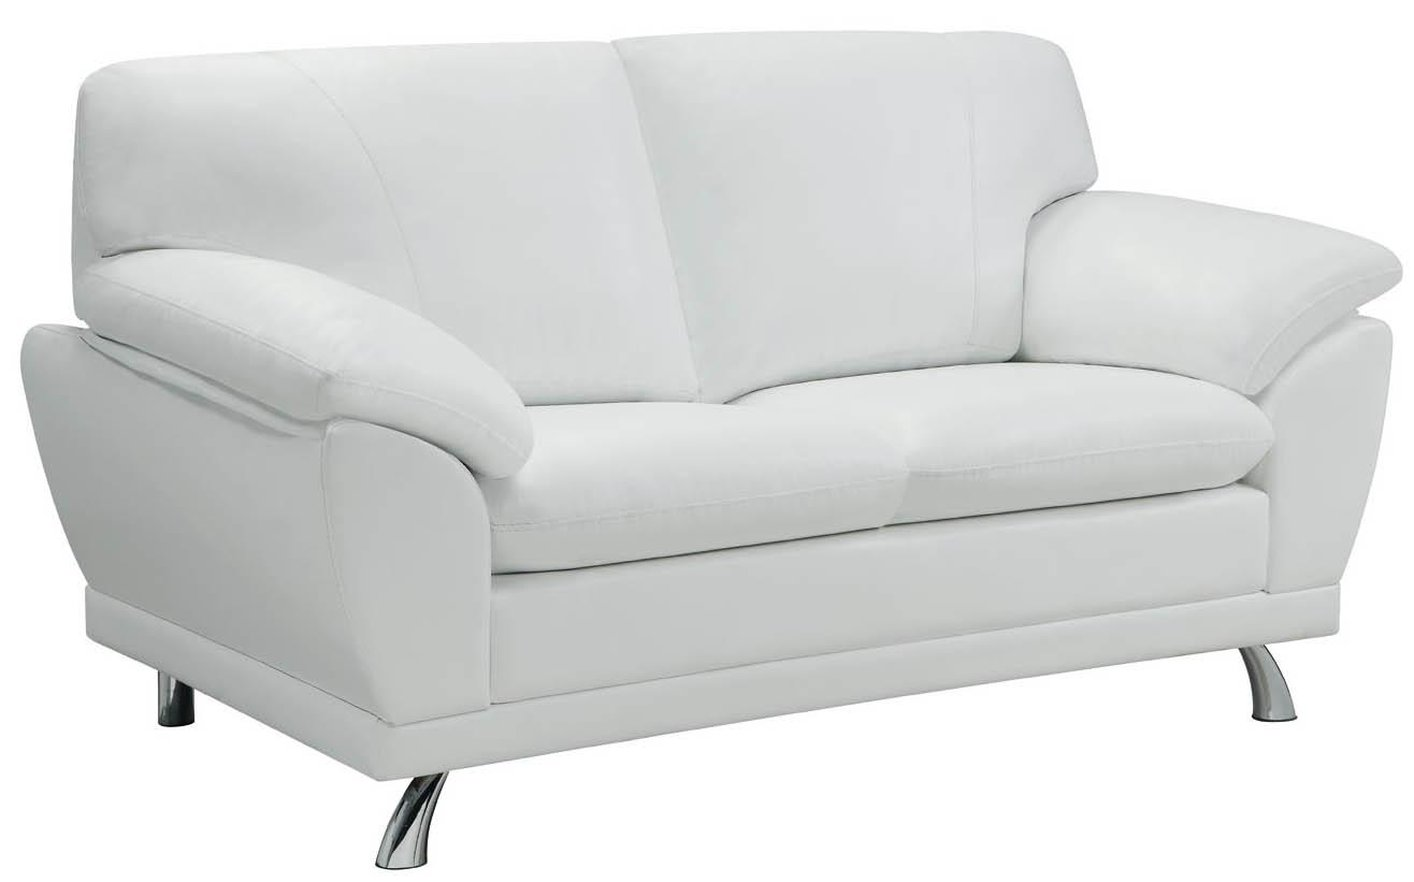 robyn white leather loveseat  stealasofa furniture outlet los  - robyn white leather loveseat robyn white leather loveseat